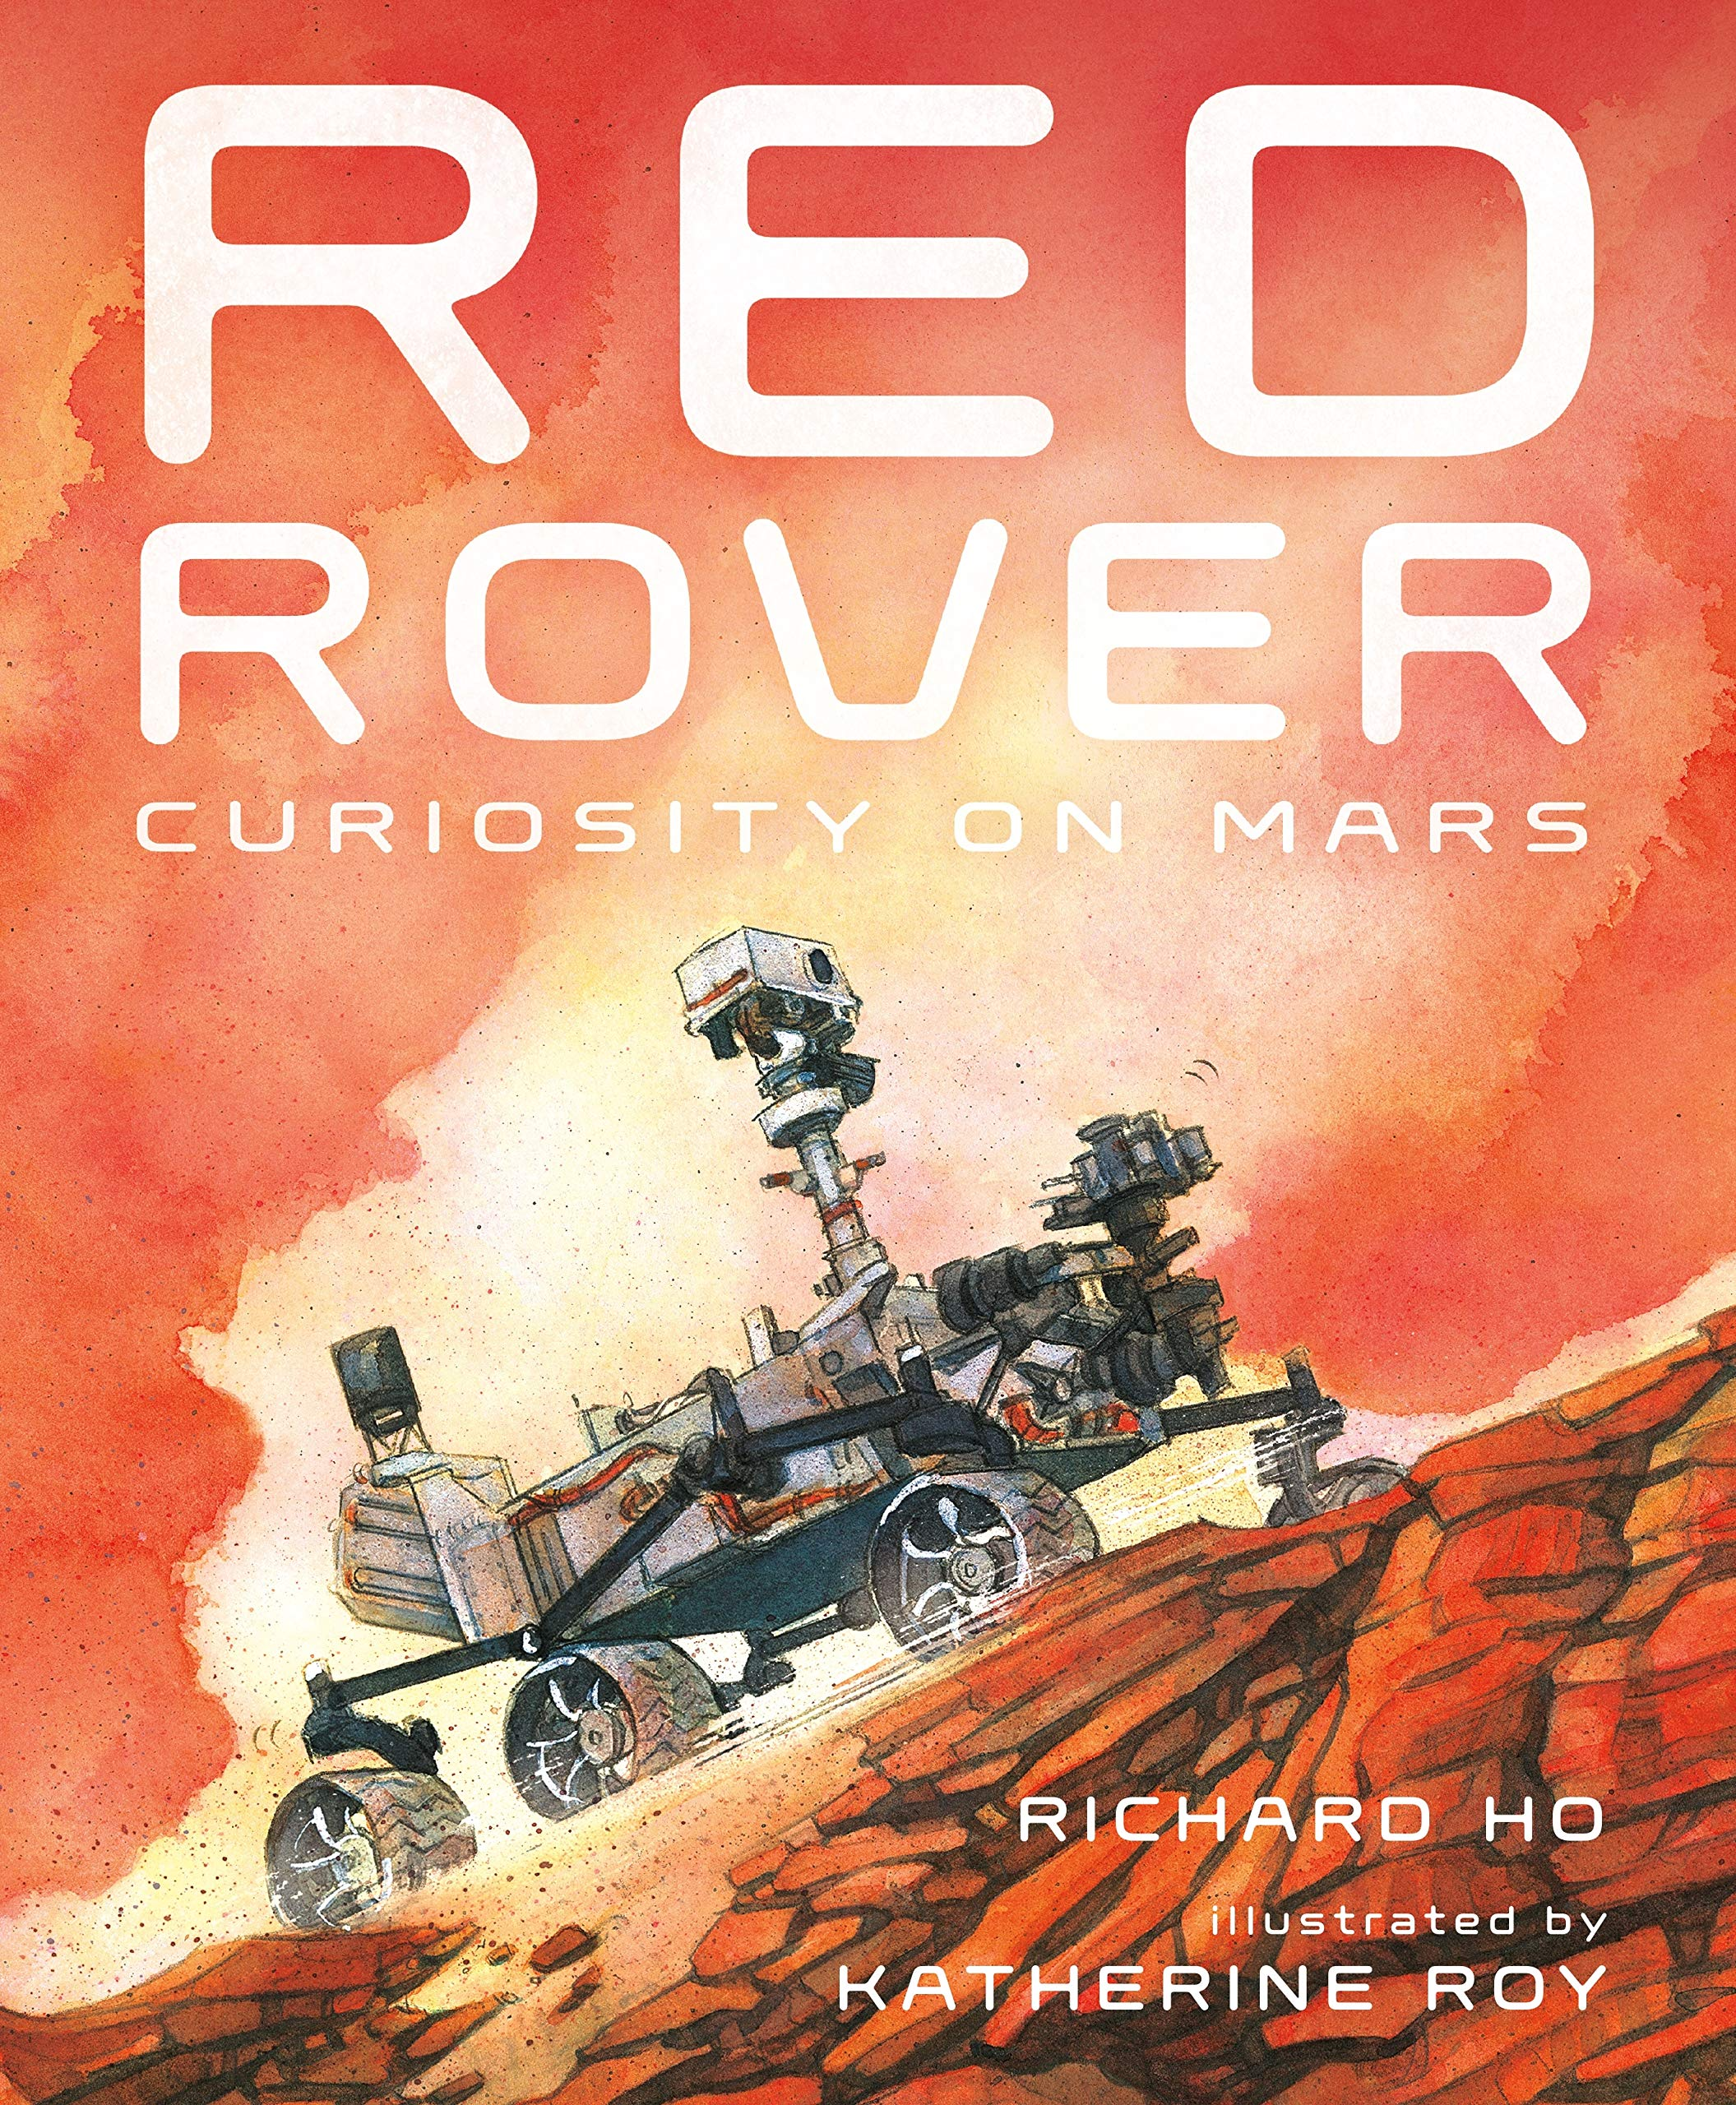 Image result for katherine roy rover mars book""